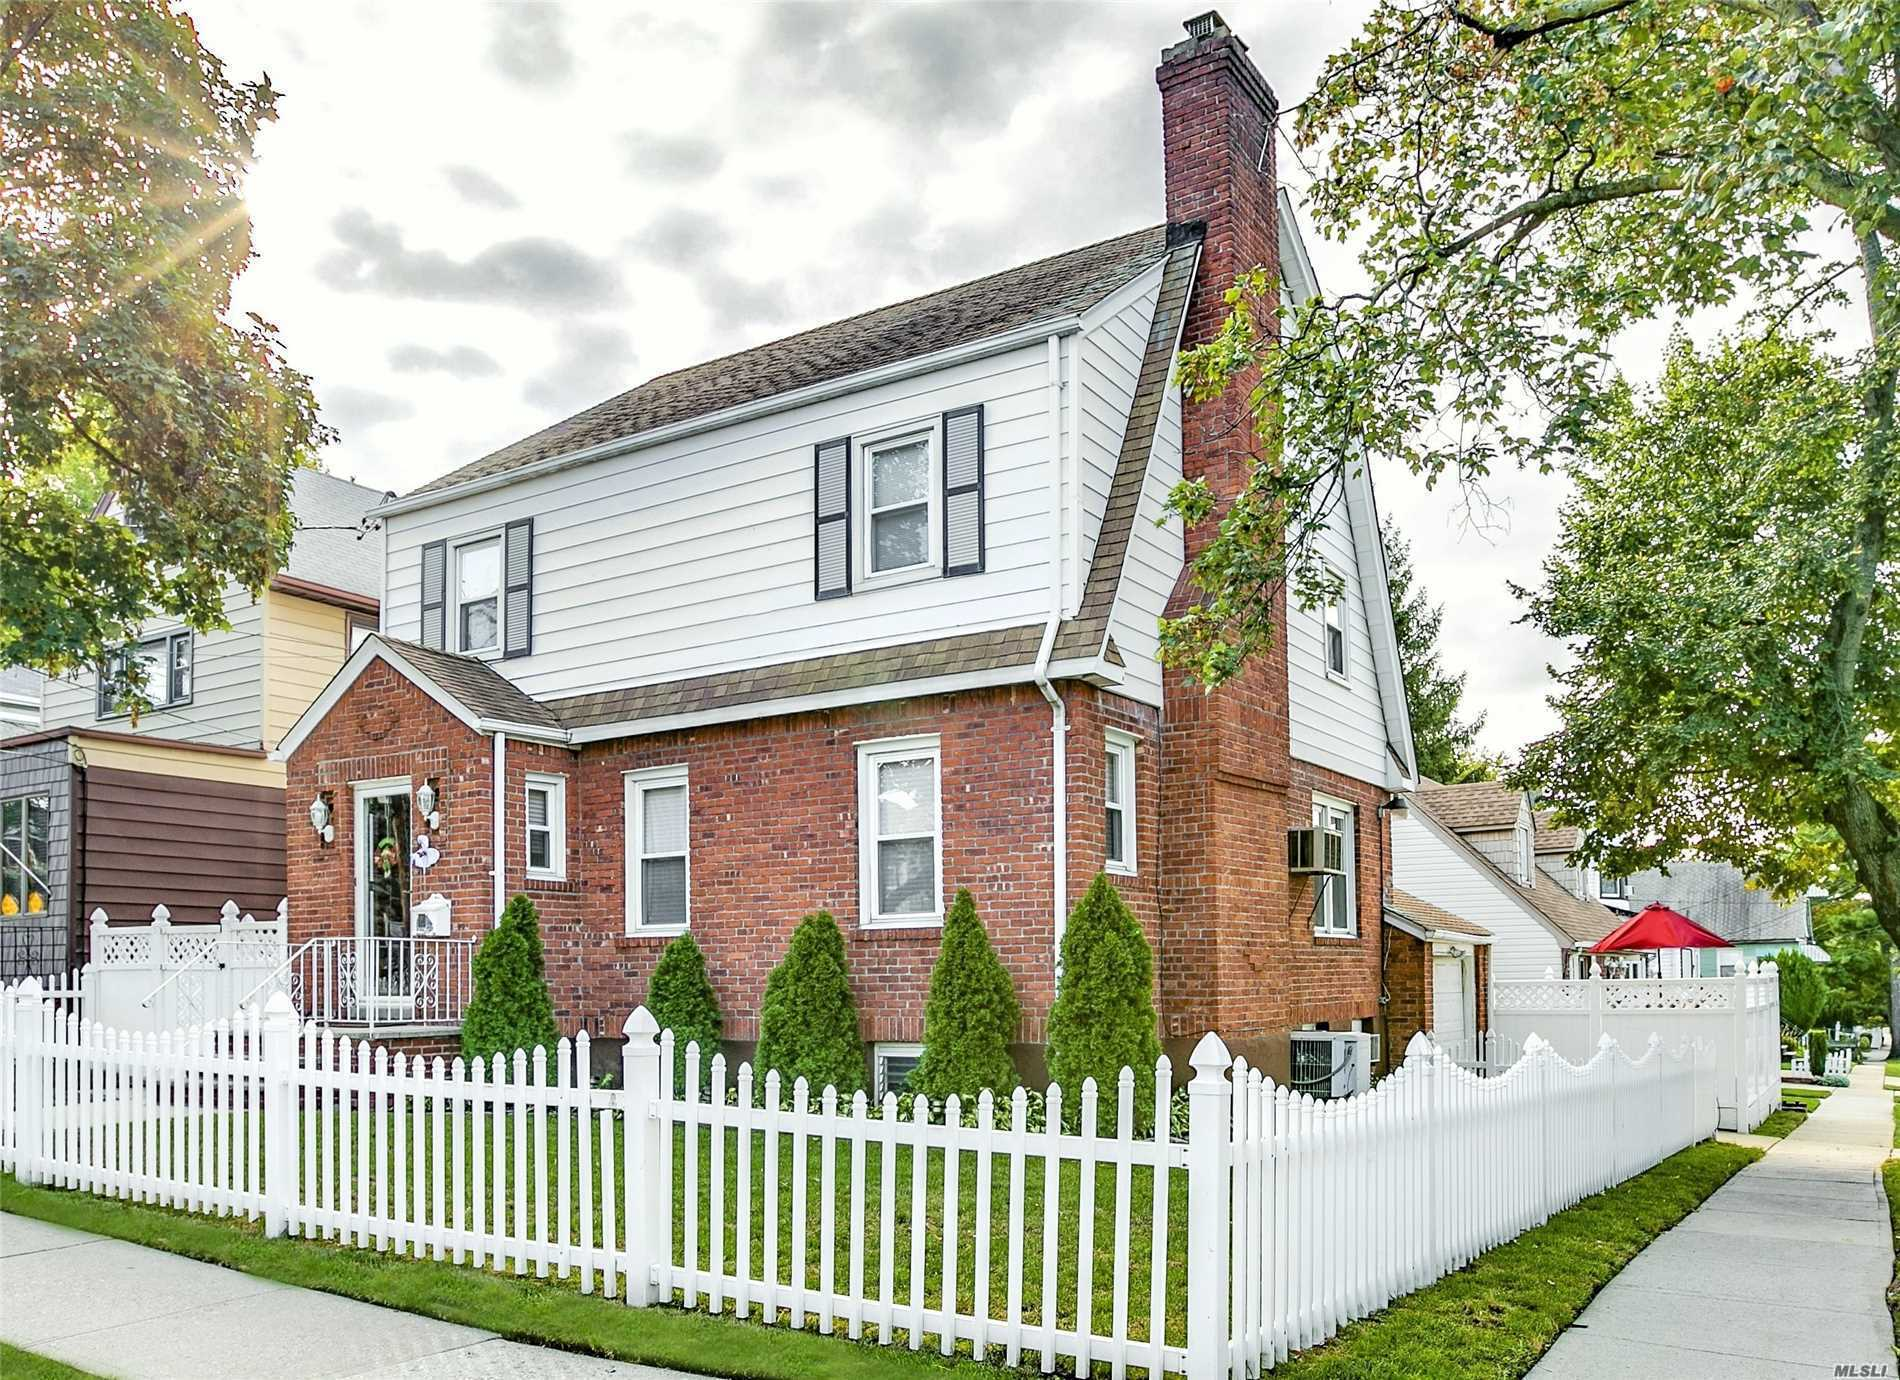 Remodeled Det. Colonial, Prime Loc, Tree Lined Street. Corner Lot 50X75. Spac 3 Br, 1.5 Ba, Living Room, Wbfp, Hdwd, Crwn Mldg, Dining Room, Kitchen W/ Granite Countertops, F/ Fin Bsmt W/ Sep Entr. Beautiful Priv. Backyard W/ Swimming Pool. Nr Park And Buses. One Car Gar W/ Pvt Driveway. Zoned R3A, Possible 2 Family Conversion. Check Local Zoning & Consult An Architect.